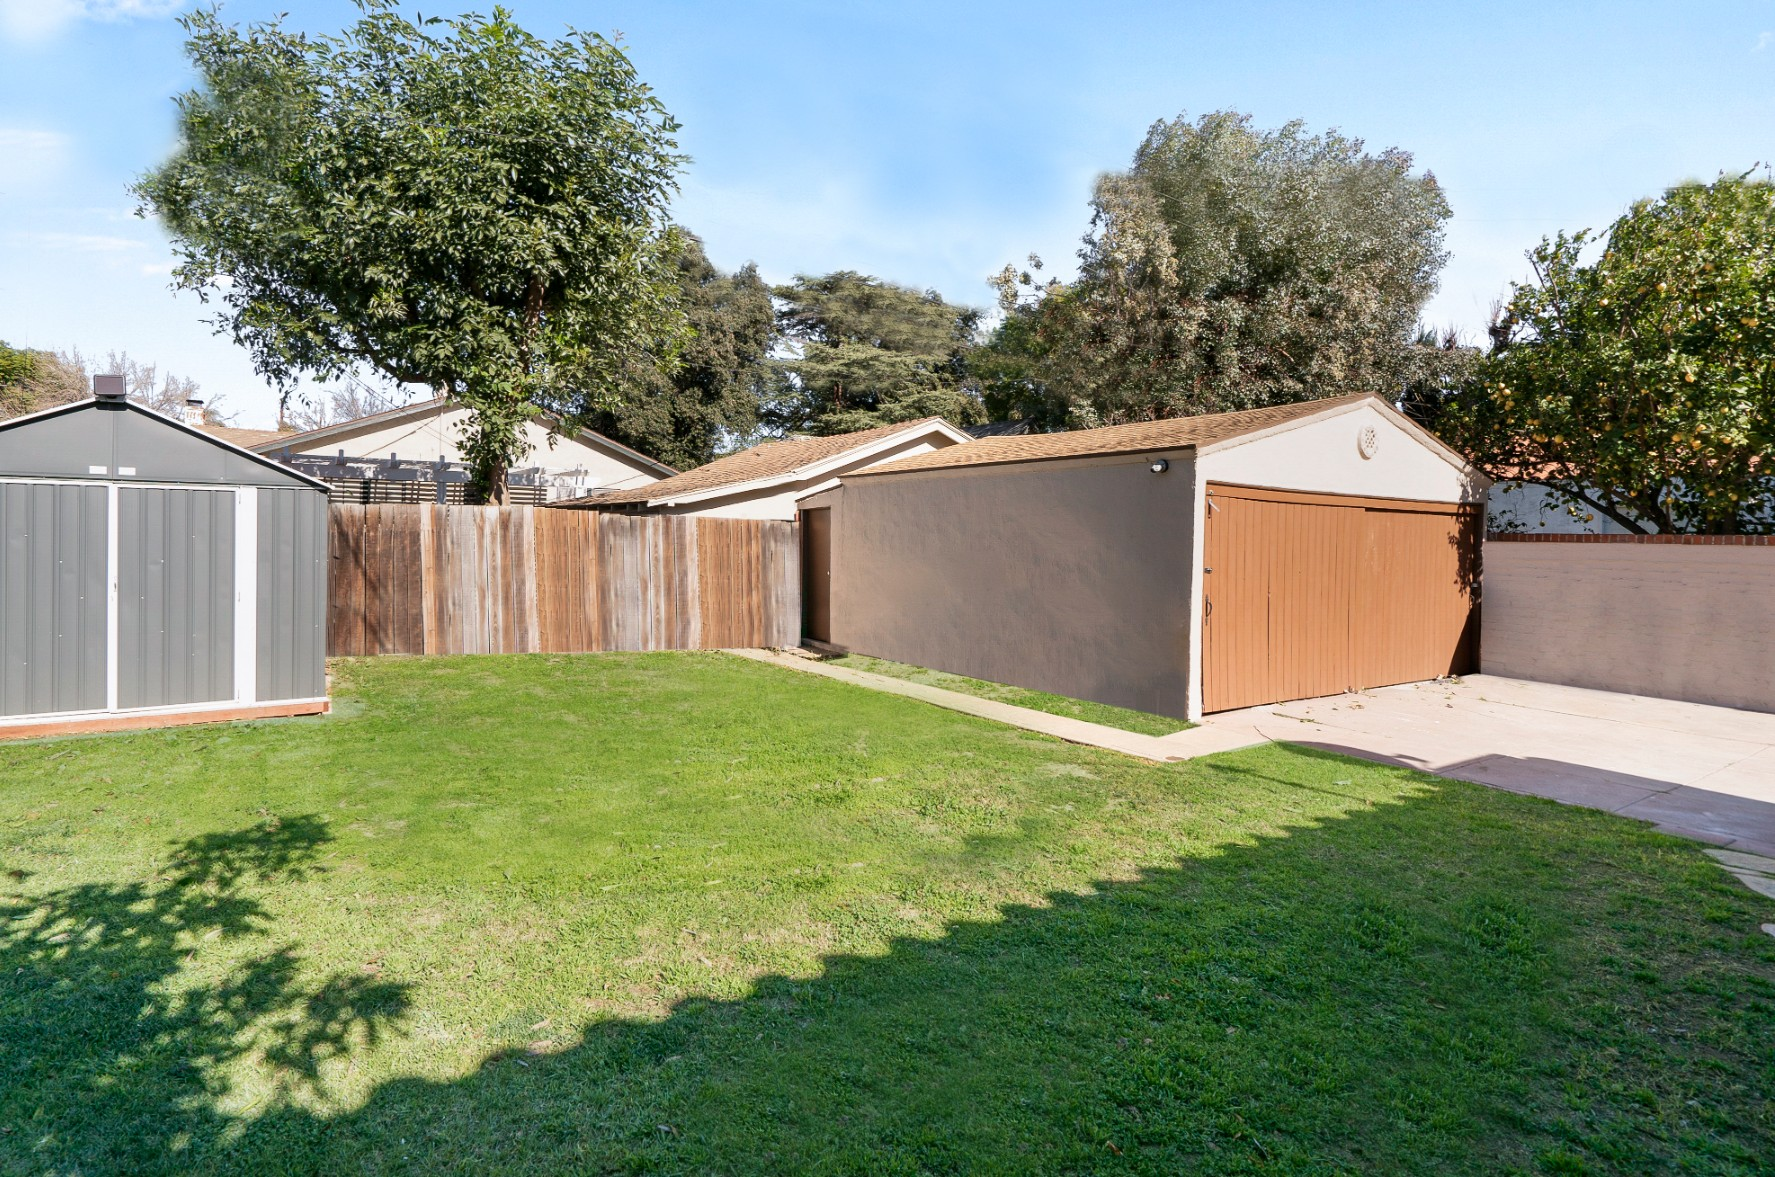 Back yard with shed and 2-car garage with utility room off the back for extra tools or more storage